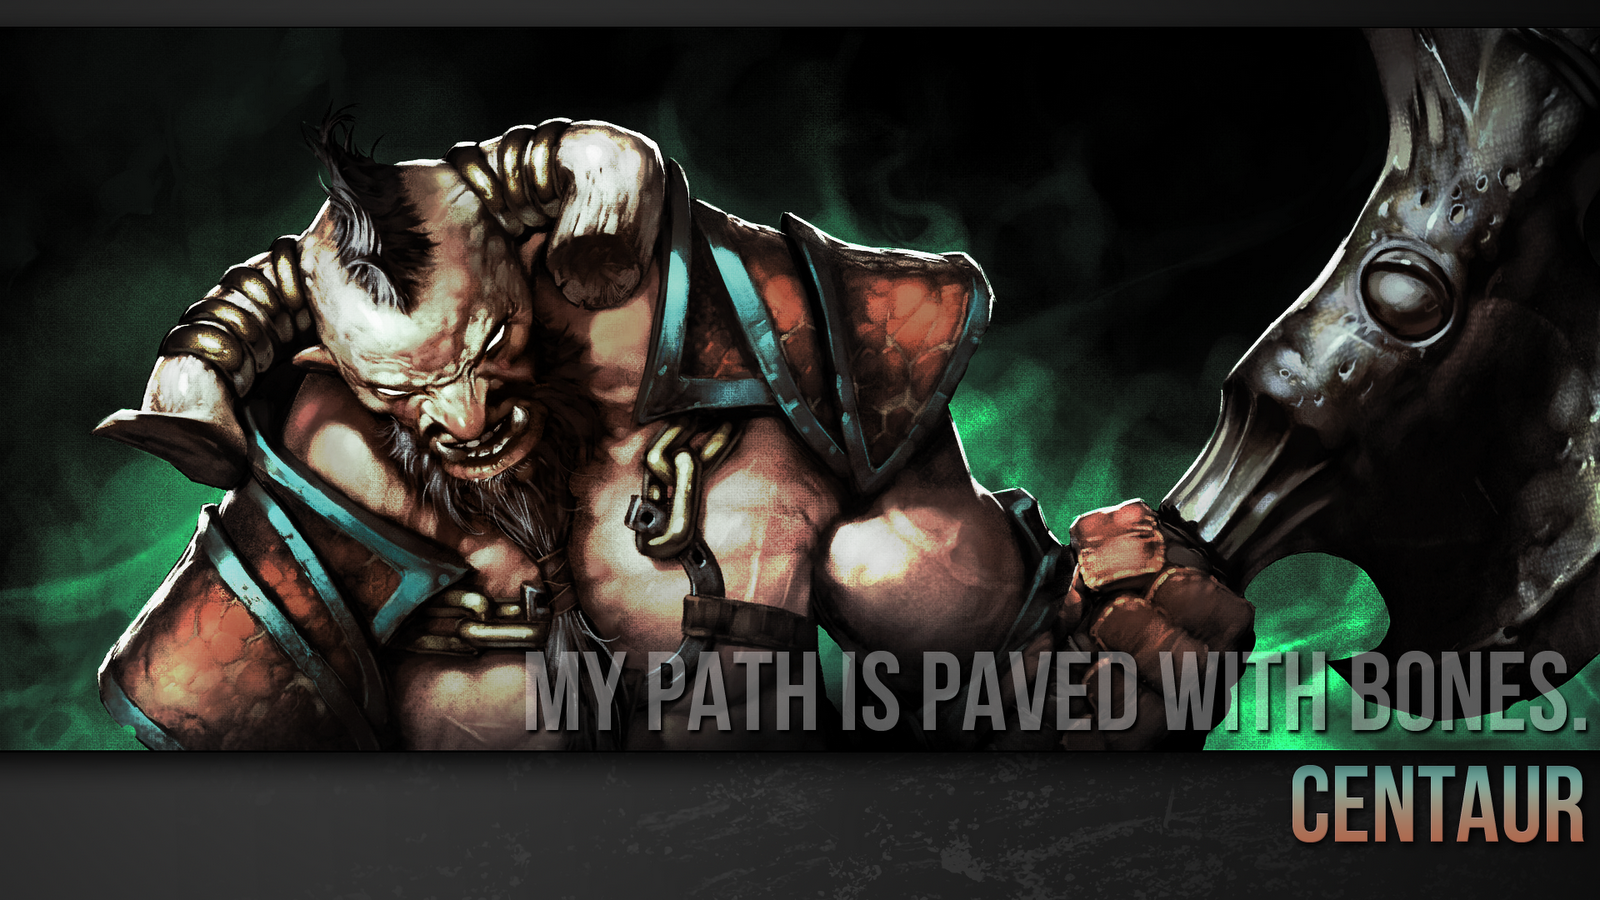 dota 2 wallpapers dota2 wallpaper centaur 1920x1080 byimkb